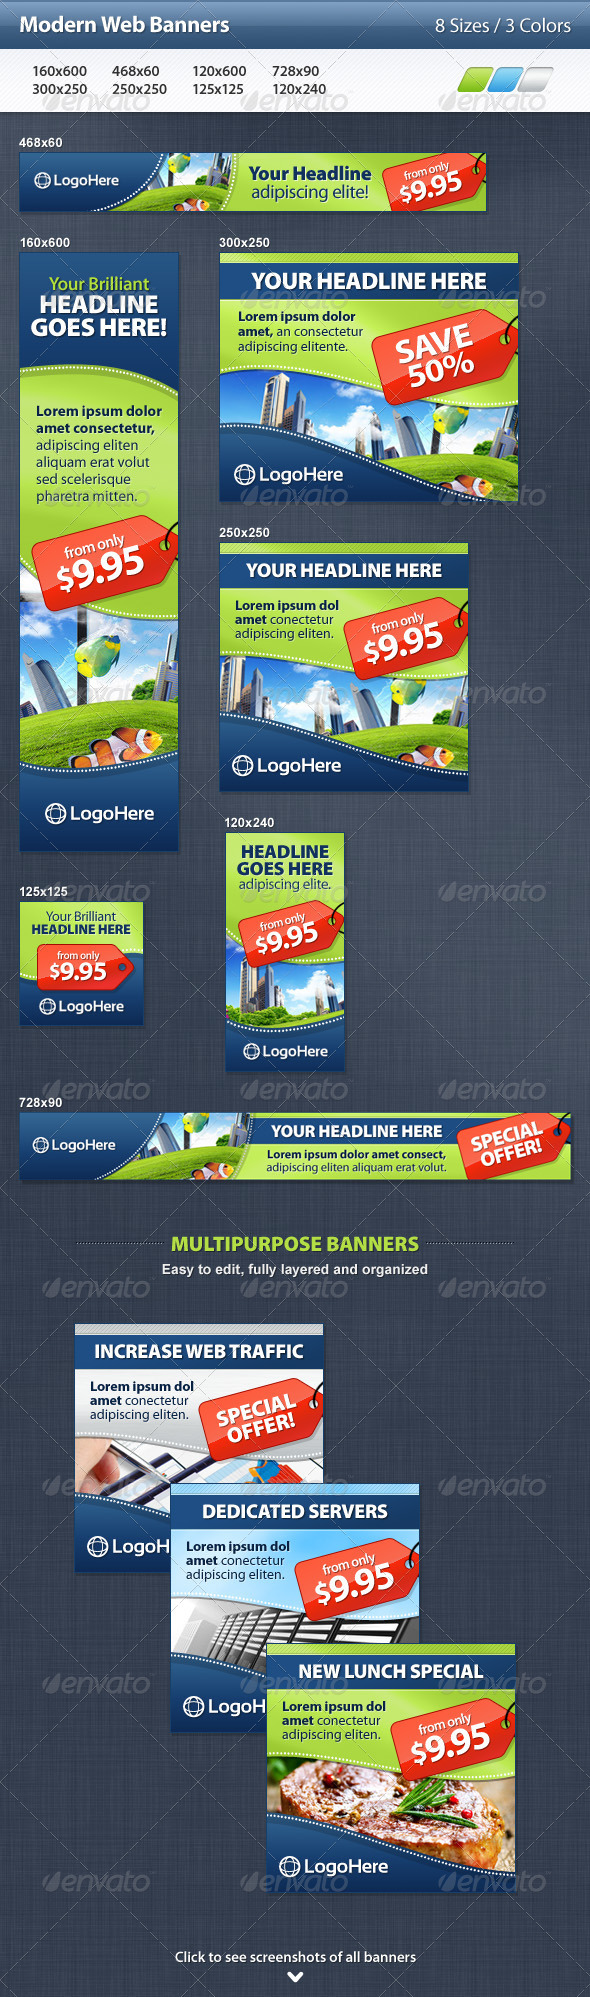 Modern Web Banners - Banners & Ads Web Elements